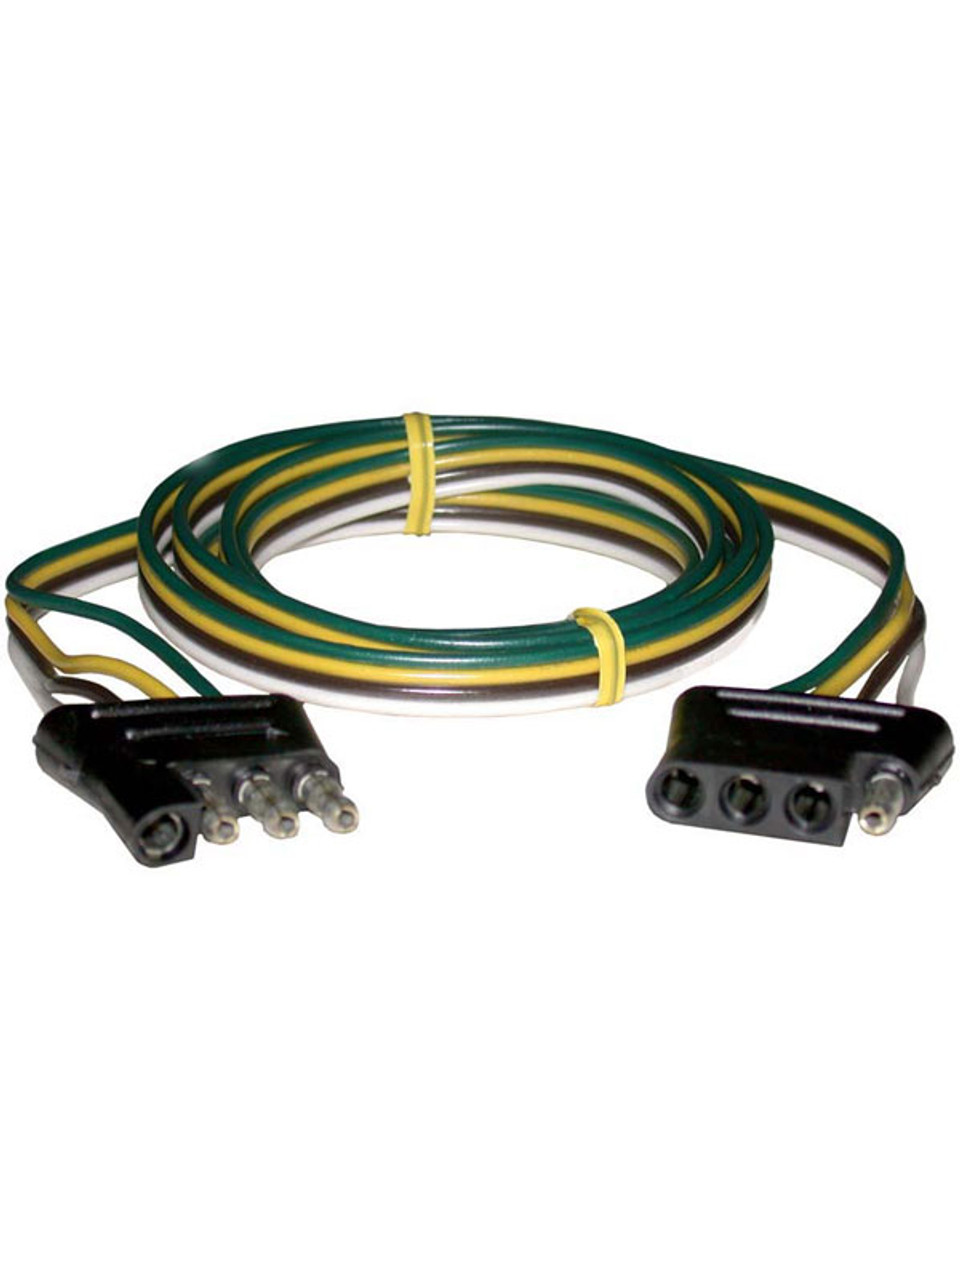 4PFC-60 --- 4-Prong Flat Vehicle and Trailer Ends